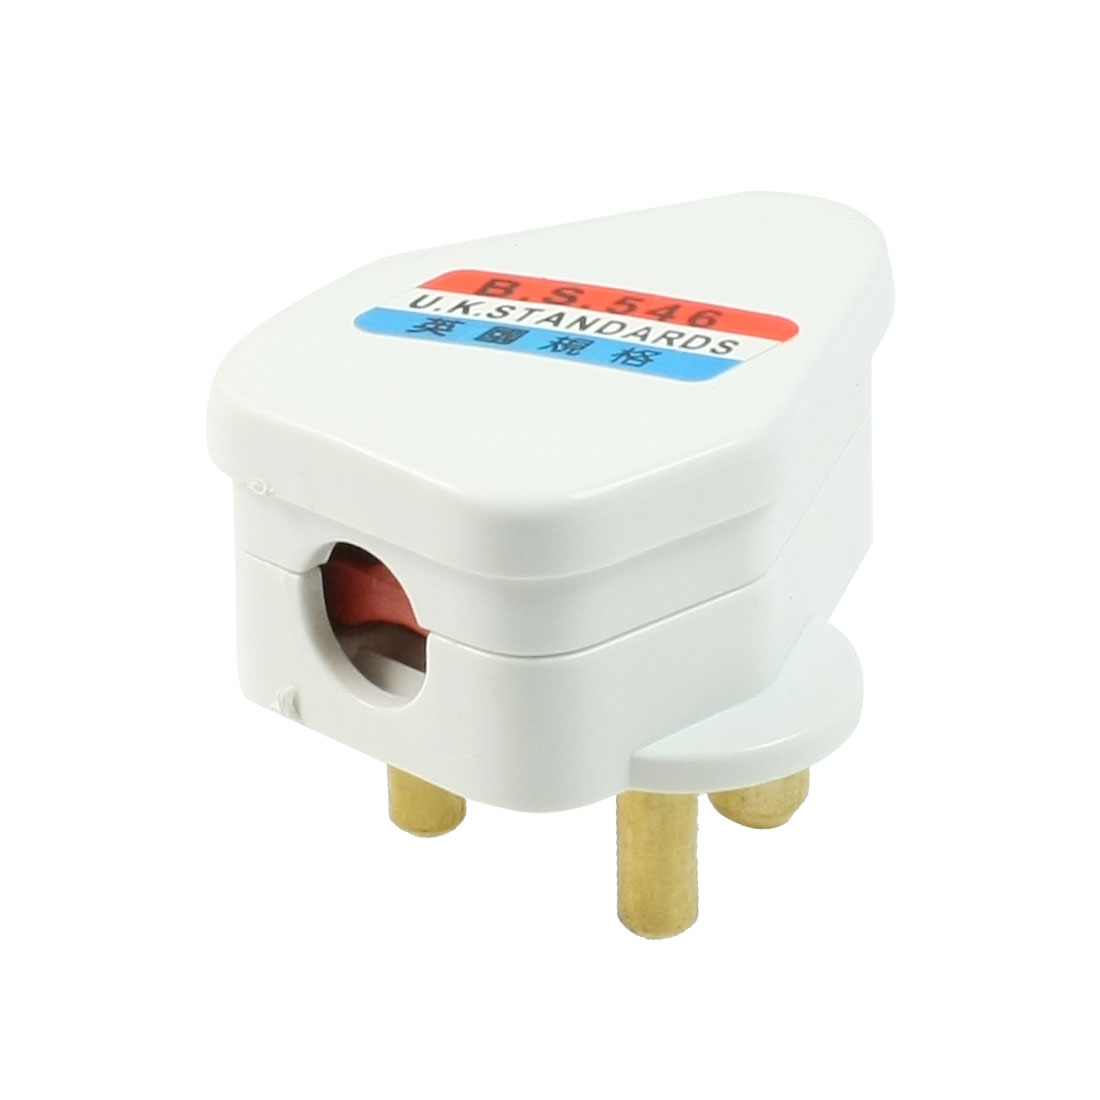 AC 250V 5A White Shell Small South Africa Wall Plug Power Adapter